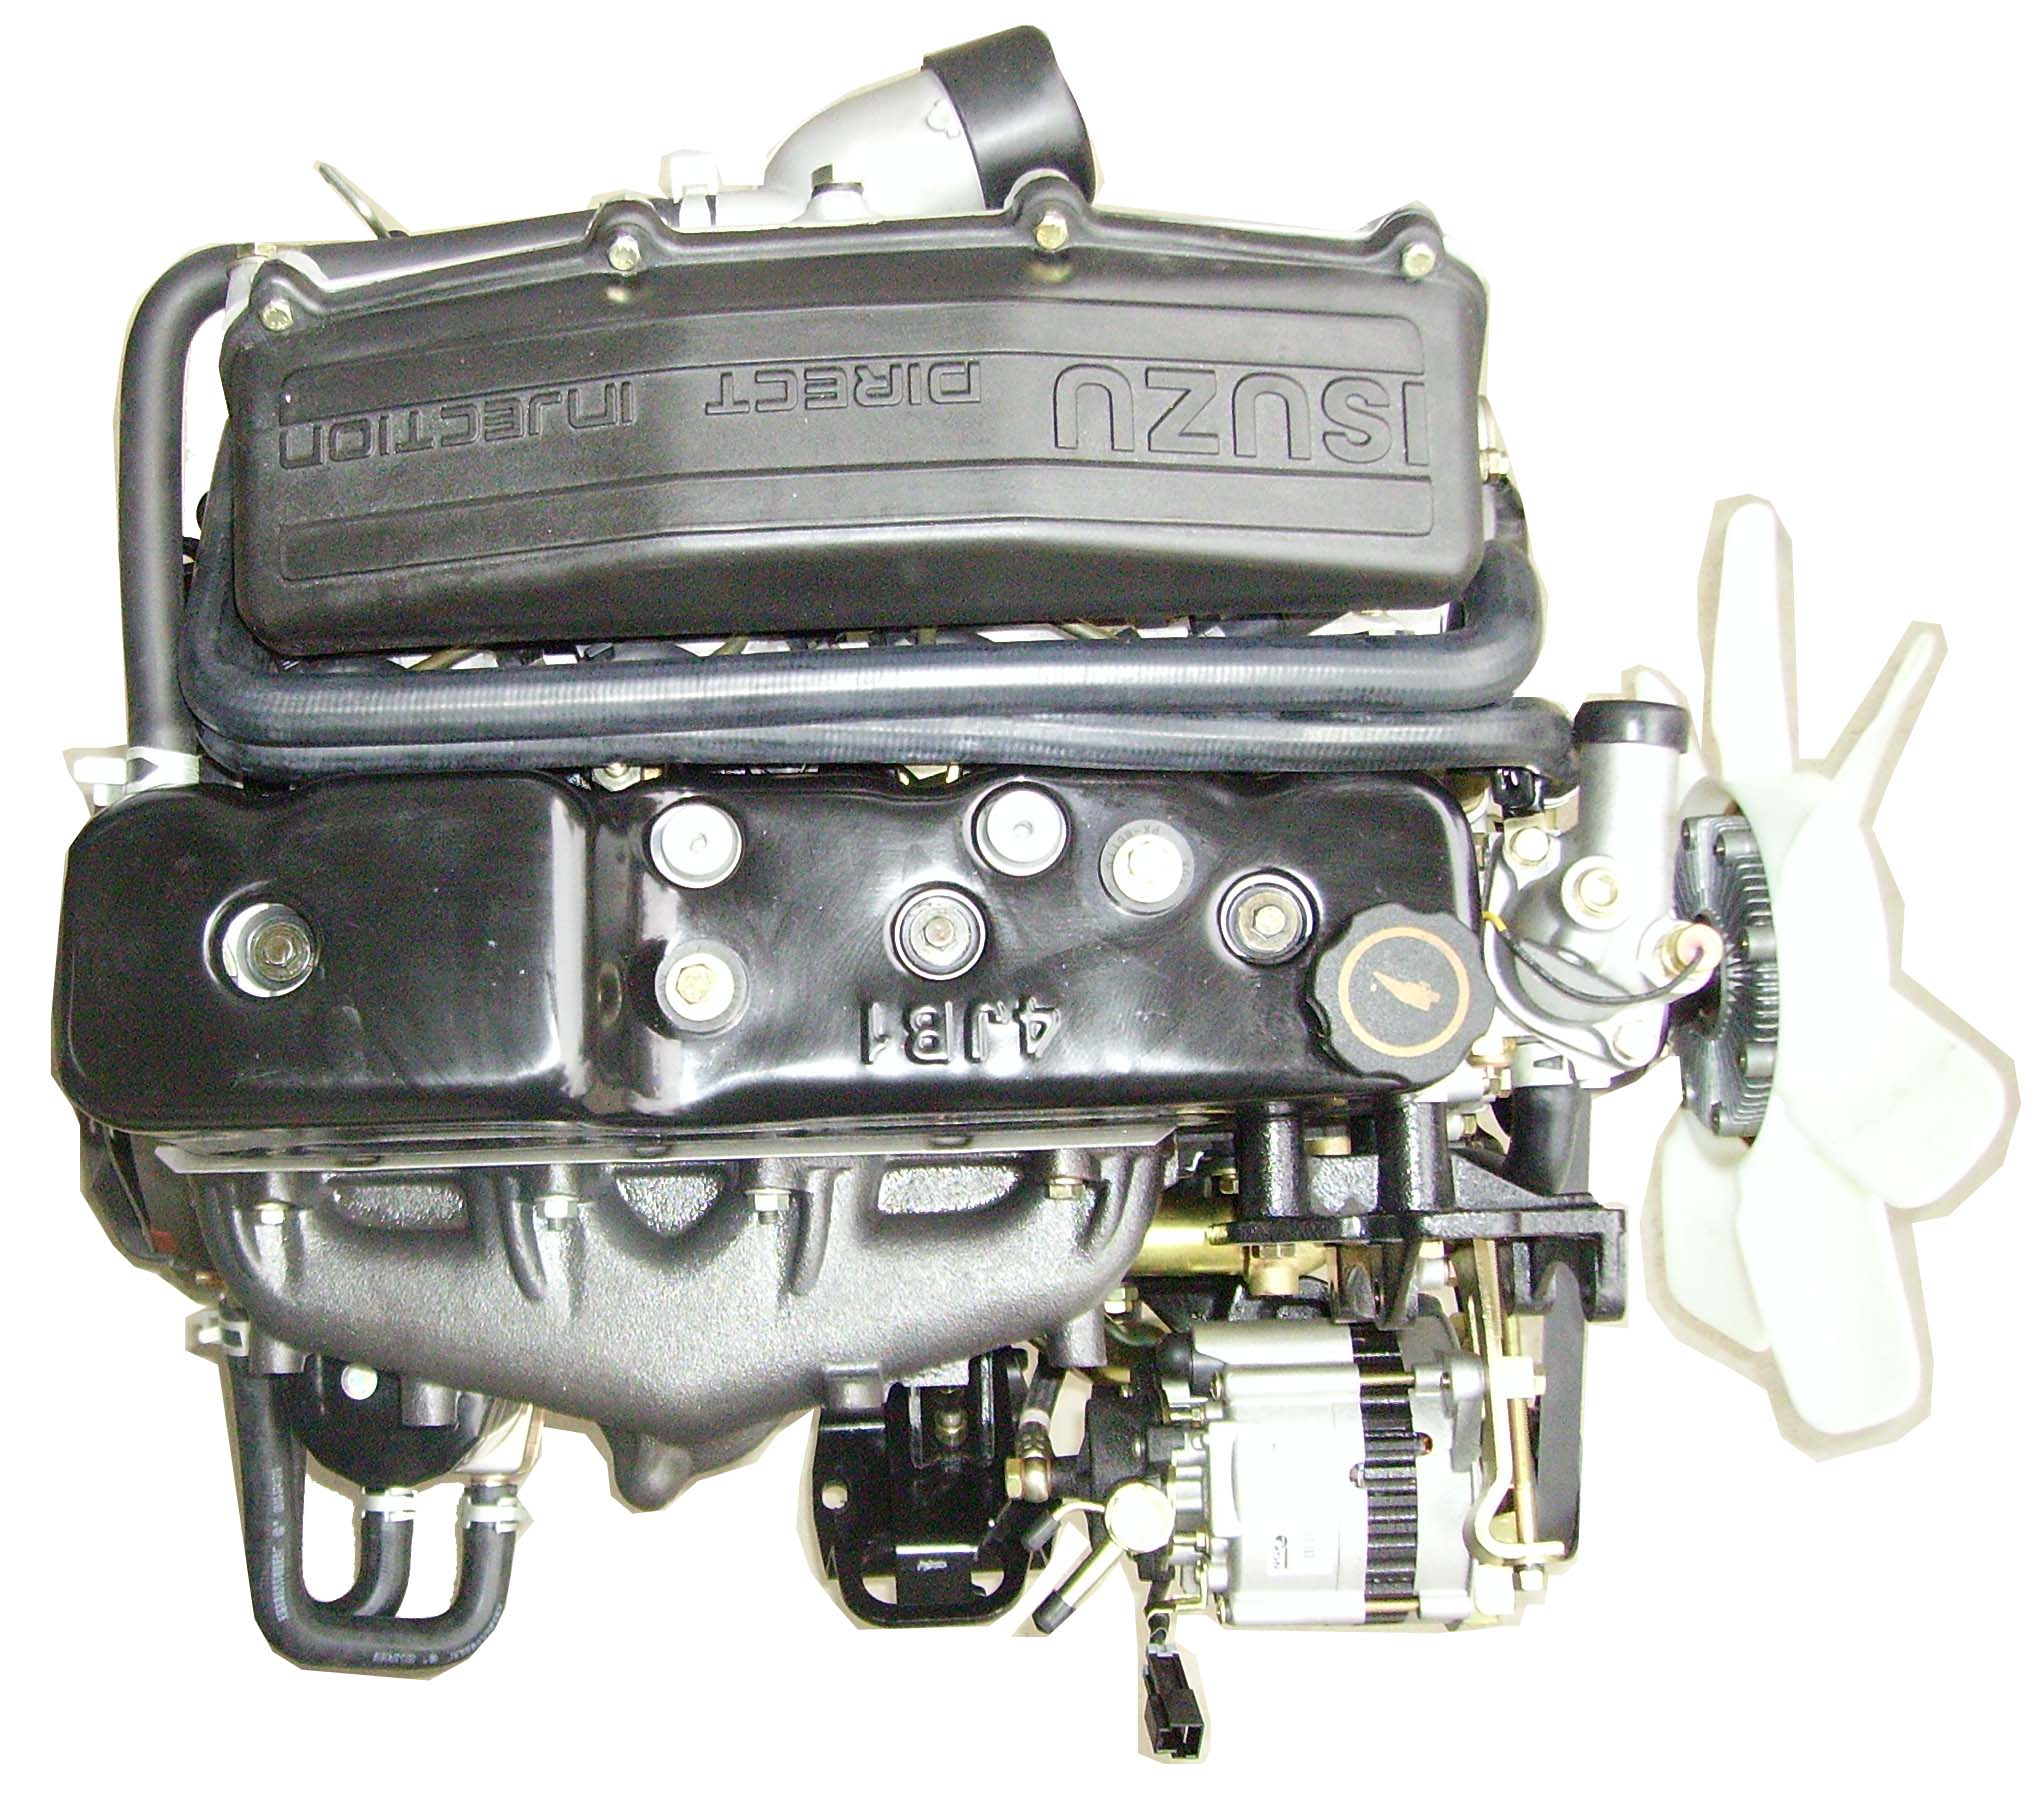 isuzu diesel engine 4hk1 tc npr nqr gmc w3500 w4500 w5500 motorcycle review and galleries